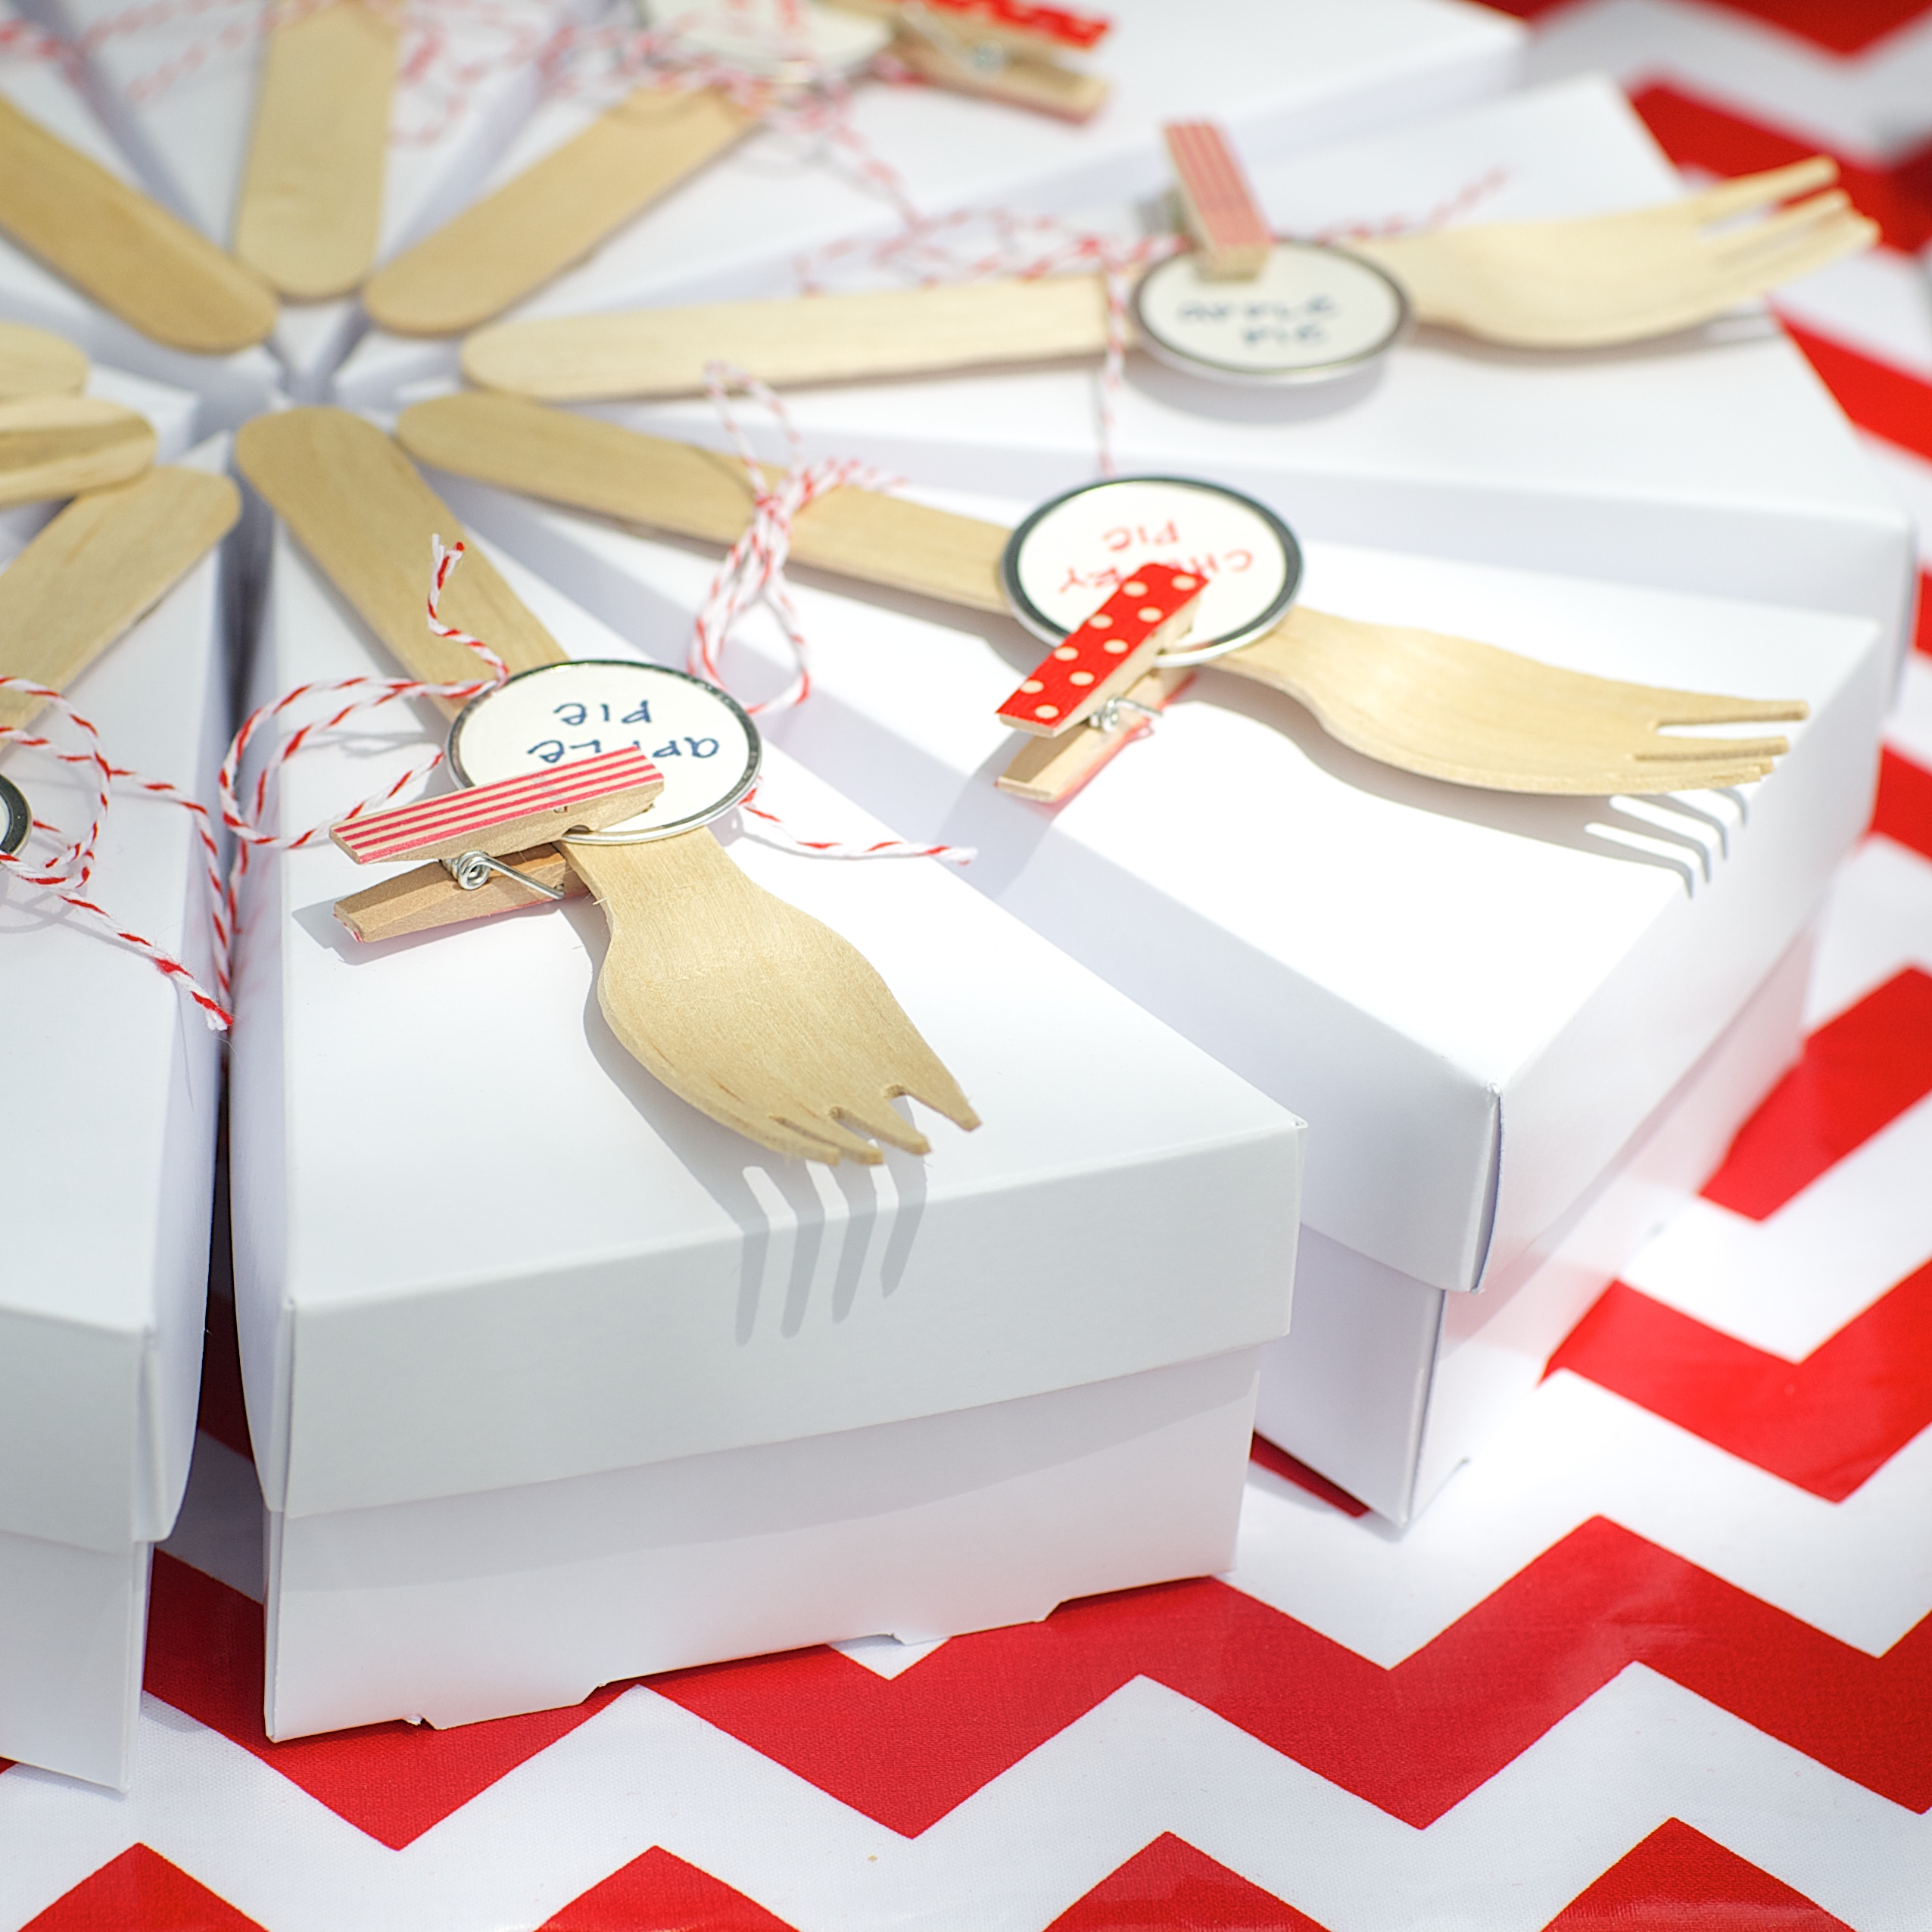 Entertaining Shoppe 4th of July Party Pie Box with Forks